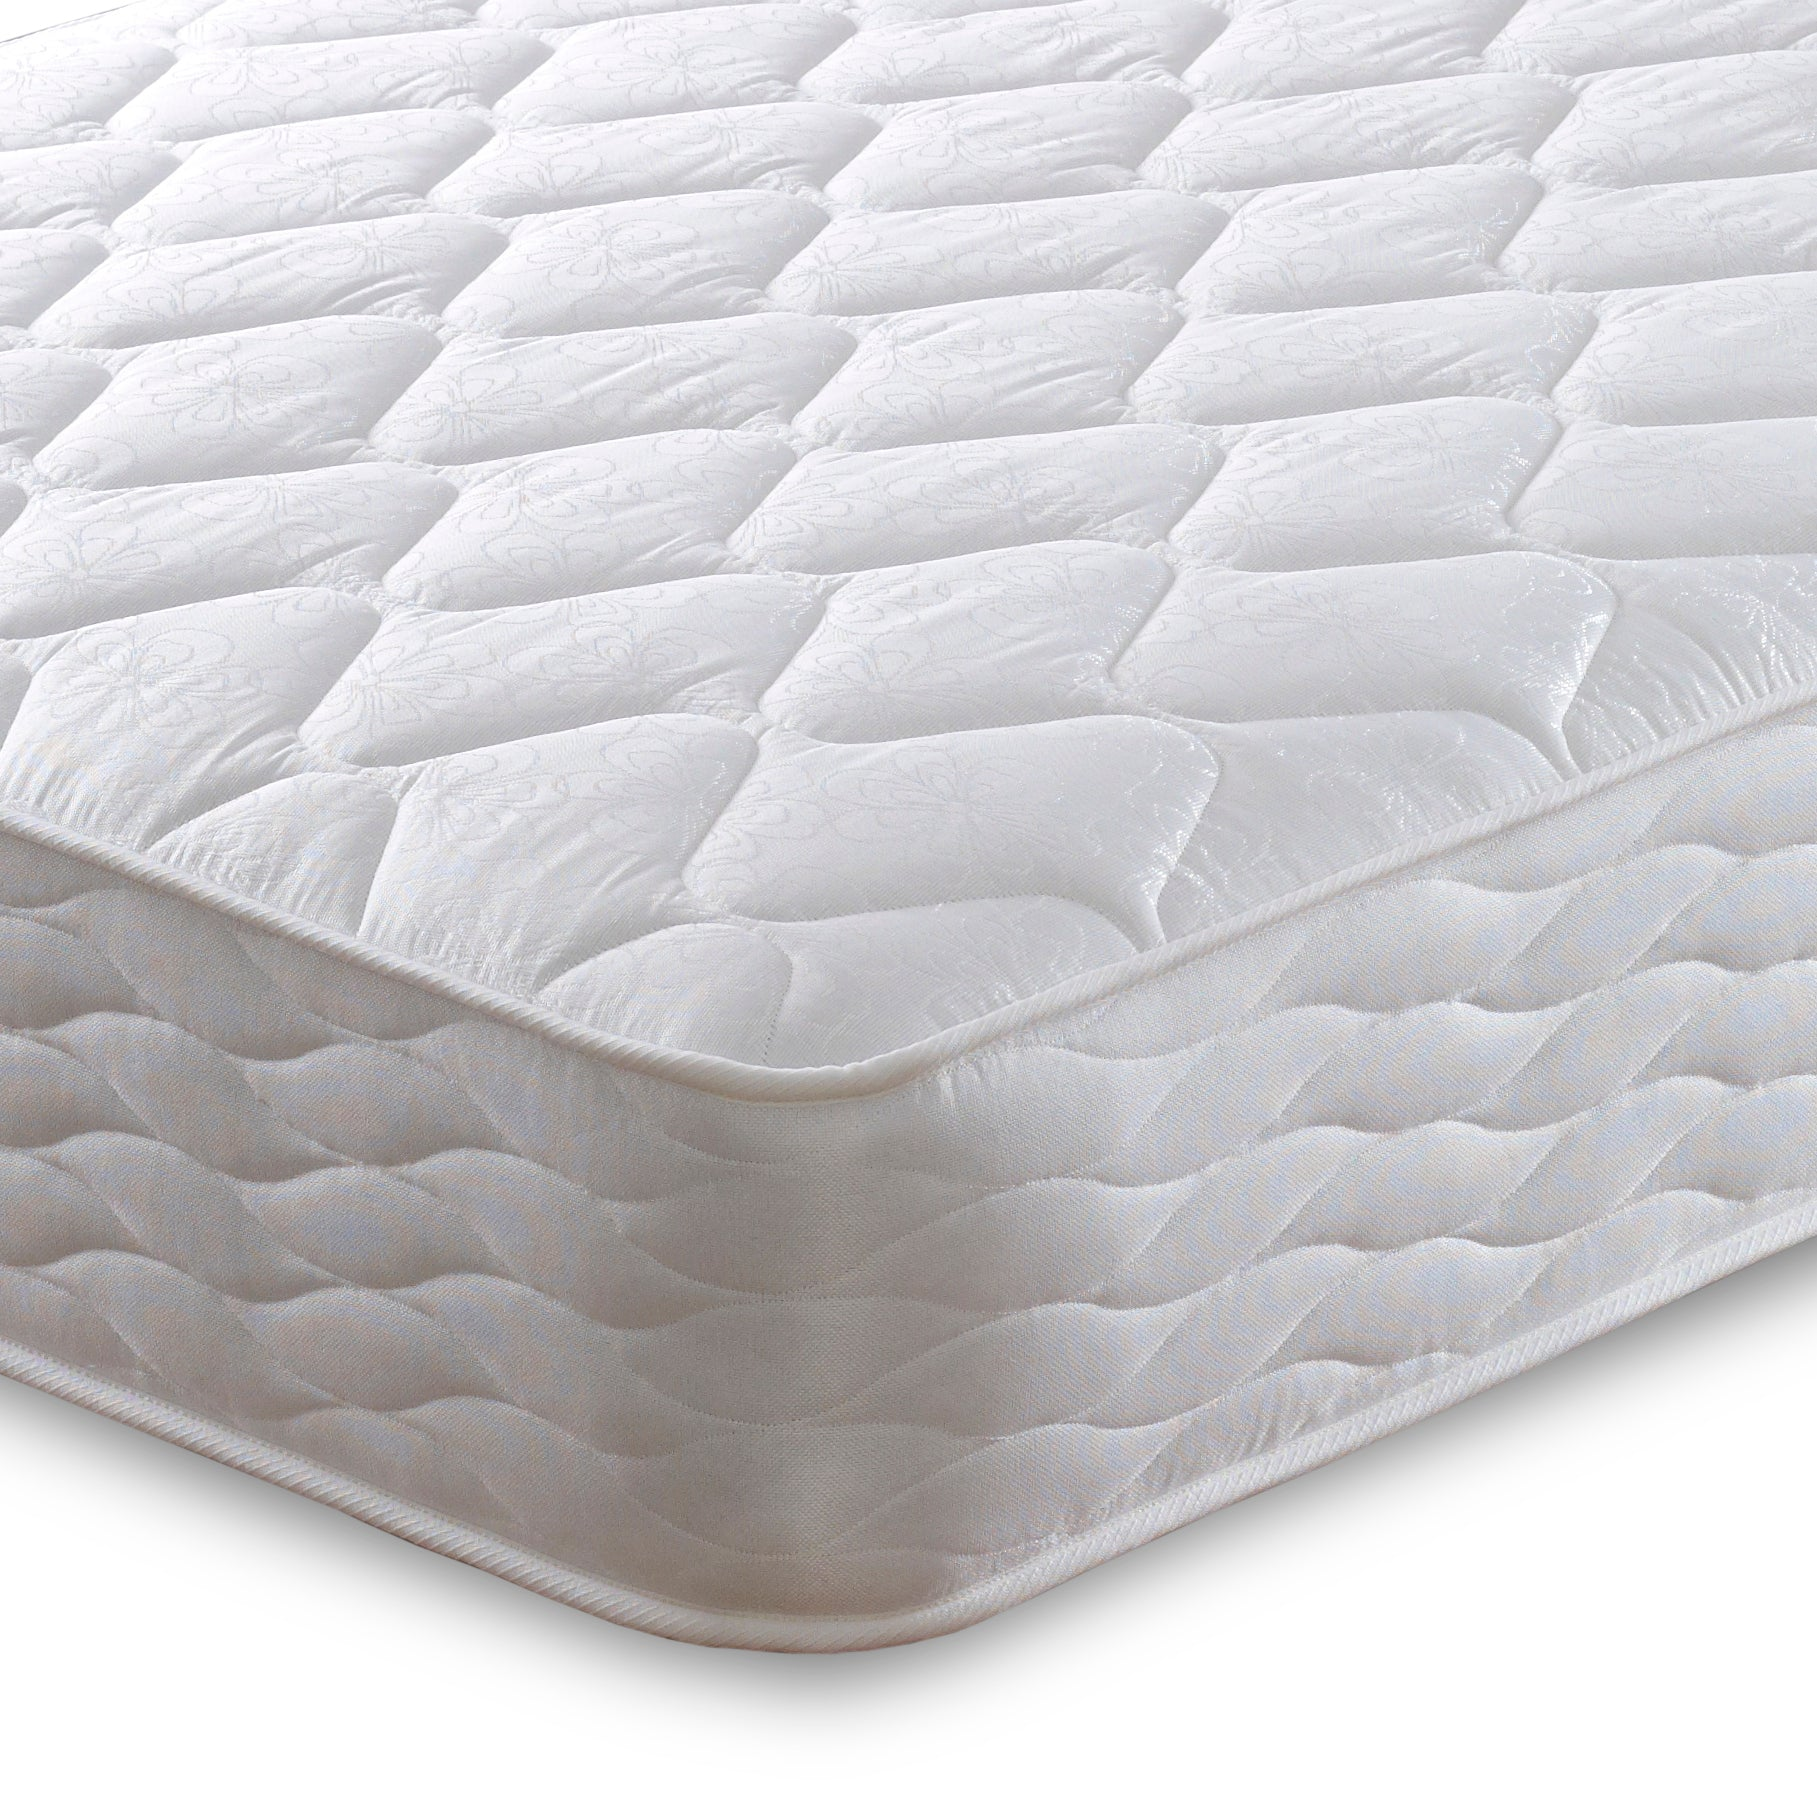 Orion Double Sided Sprung Micro Quilted Mattress - Cheap Beds Direct